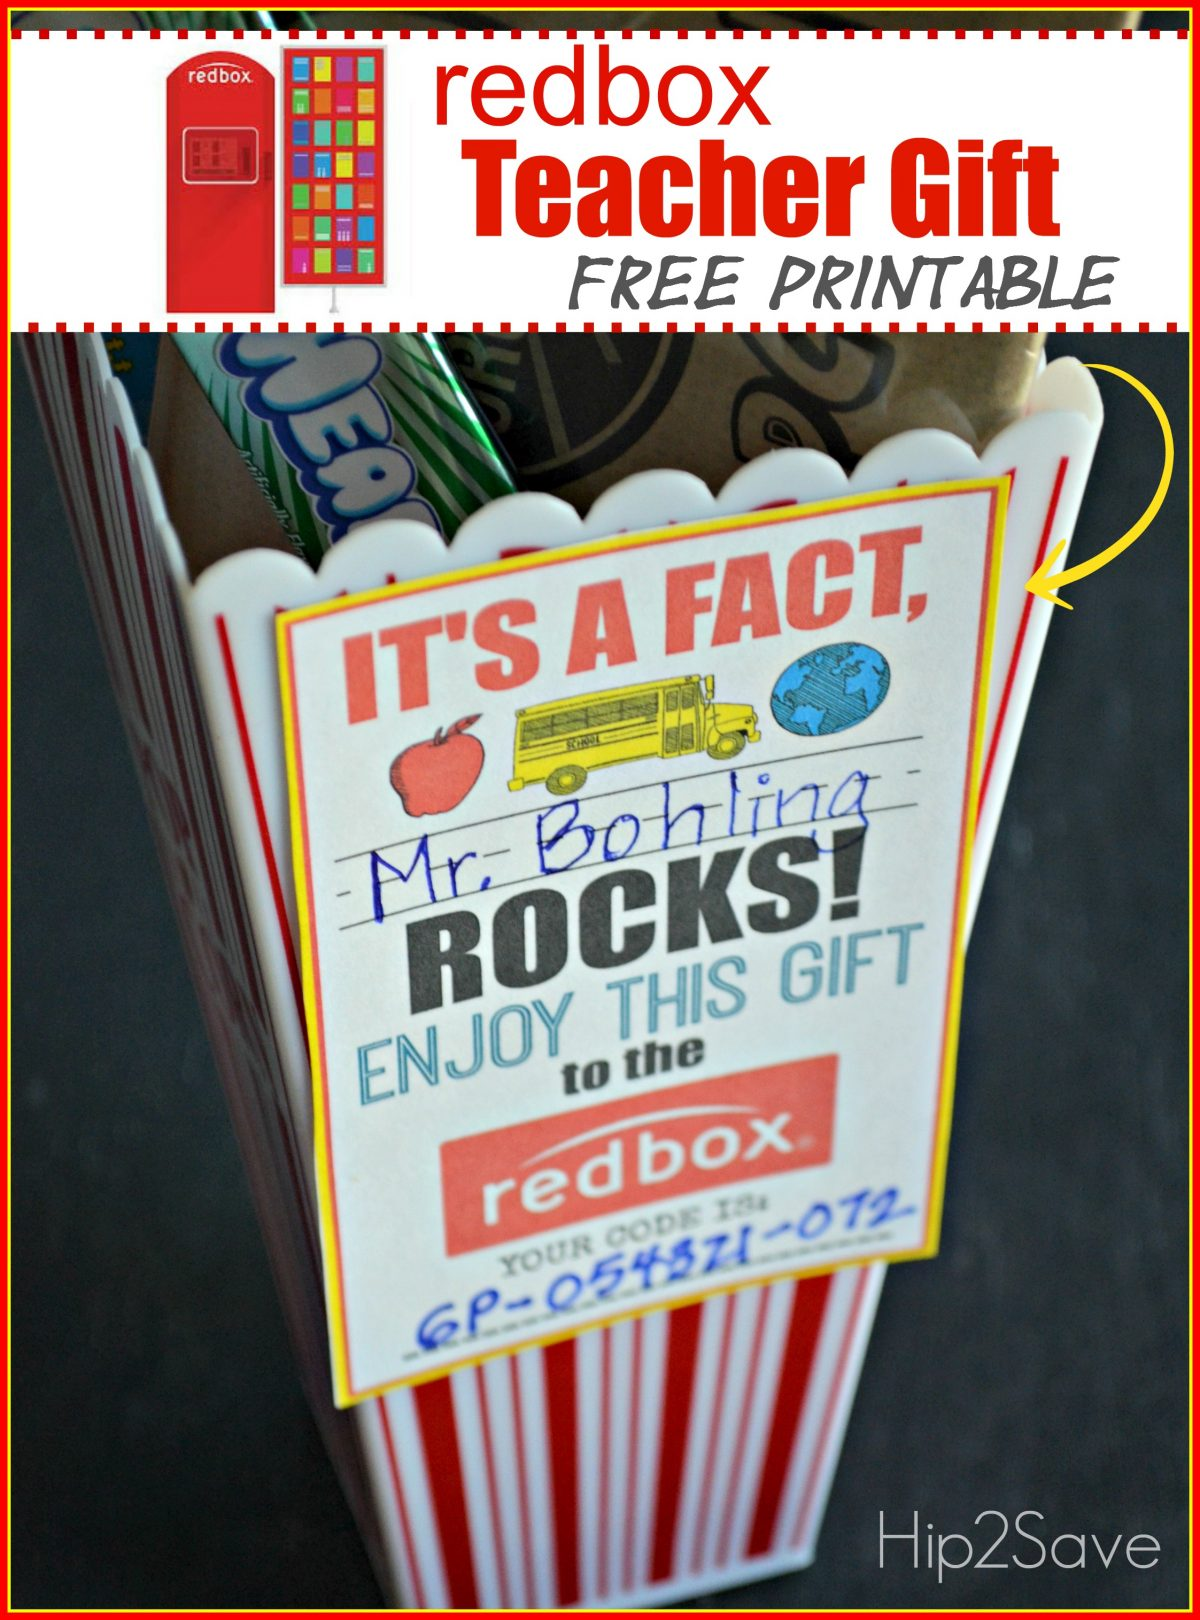 picture about Redbox Printable Gift Certificate identify Trainer Appreciation Reward Strategy: Present a Redbox Code (Cost-free